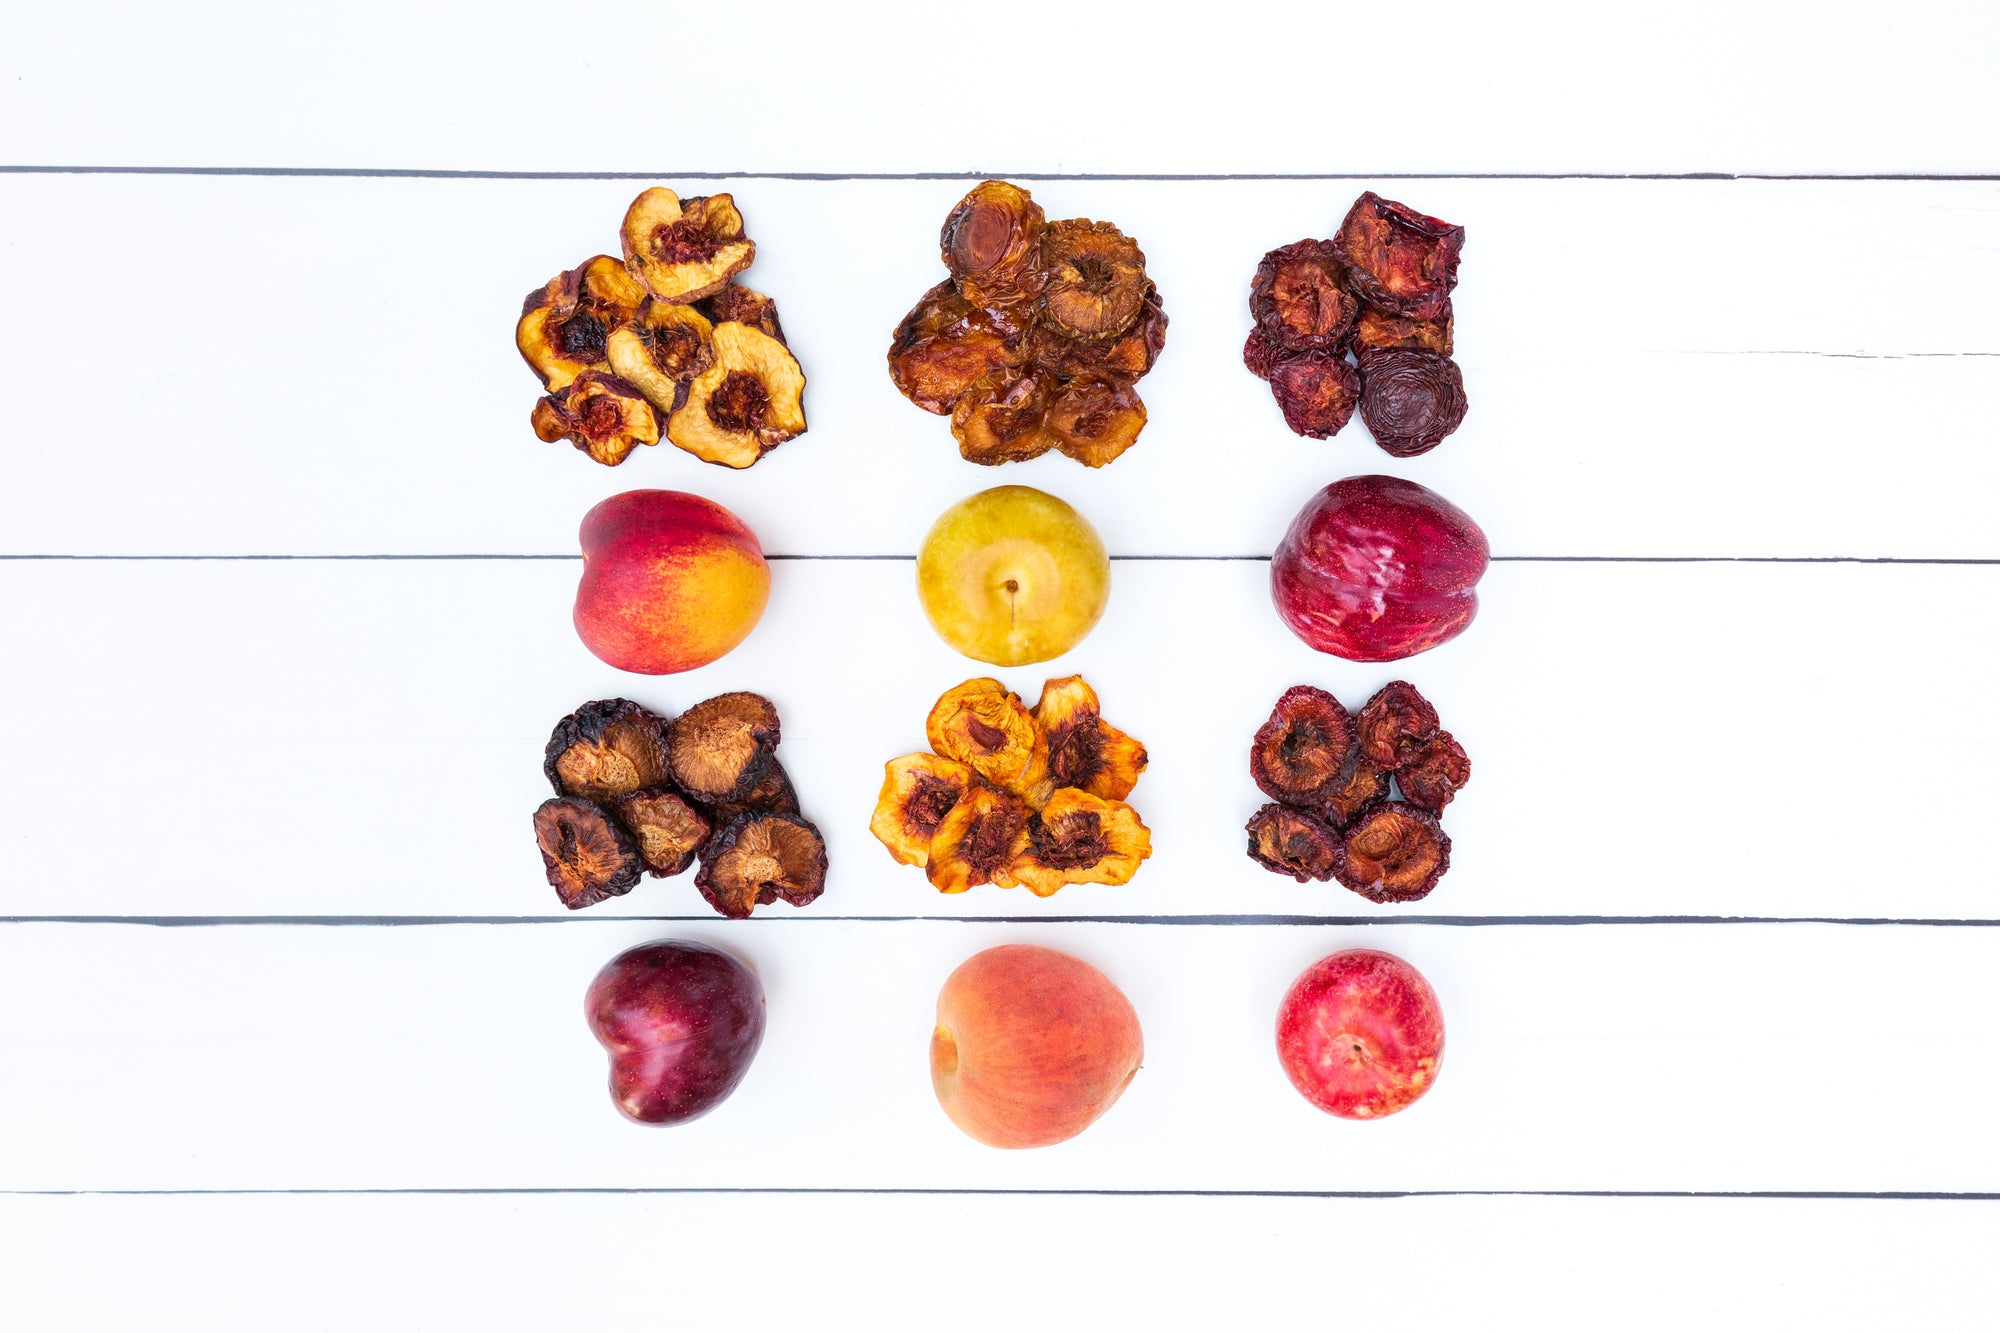 Multiple dried fruit varieties next to their fresh counterparts